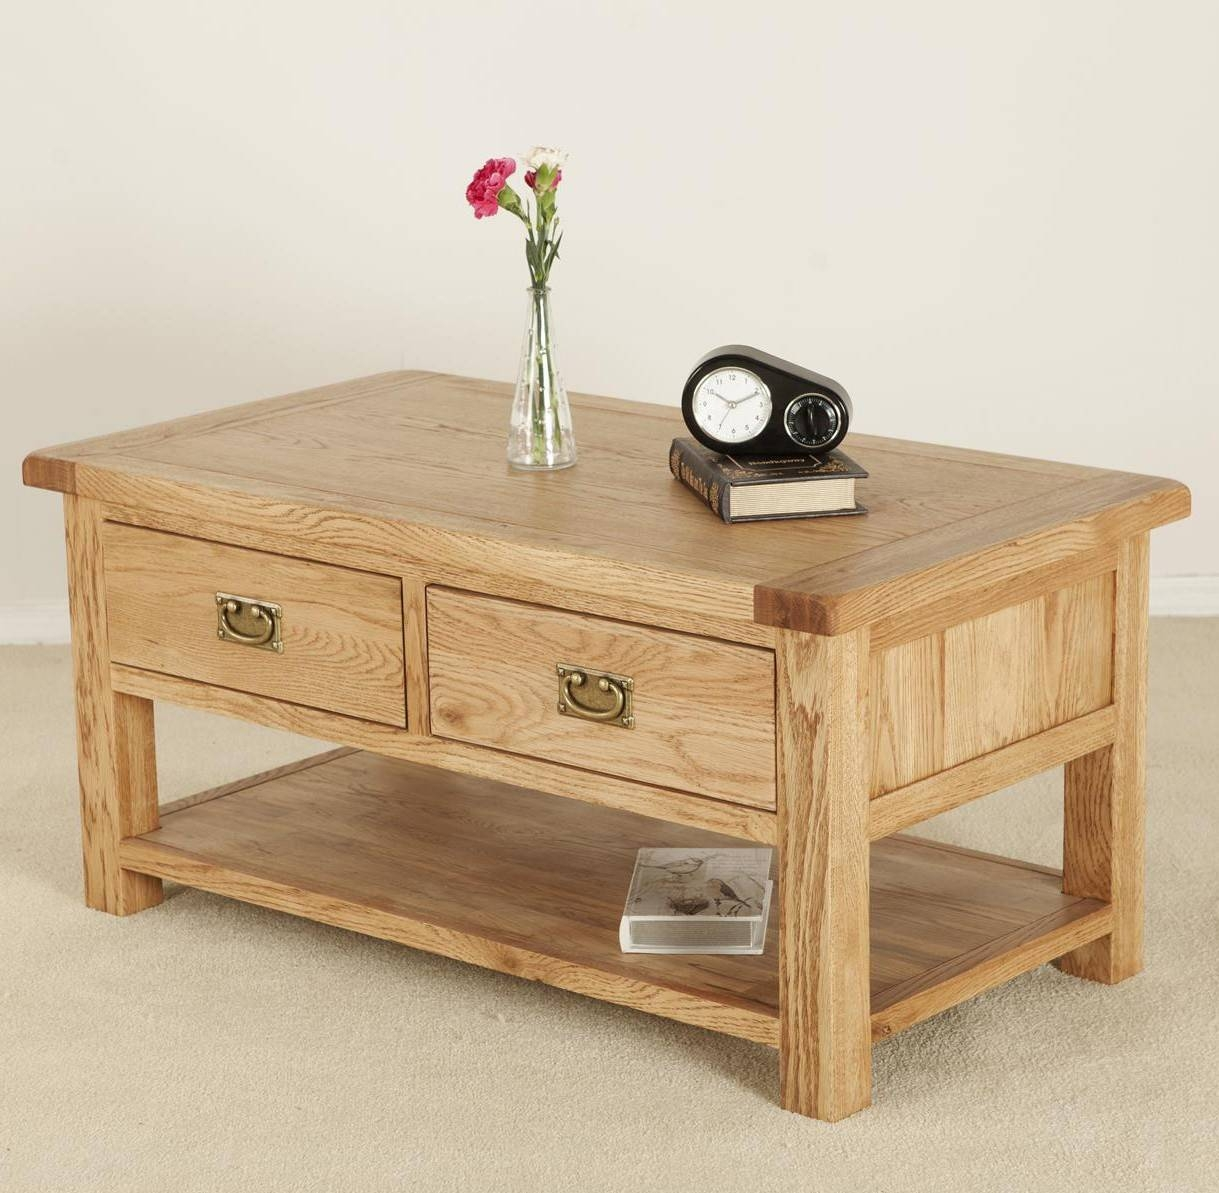 Small Wooden Coffee Table Solid Wood Coffee Tables With Drawers Buethe Org